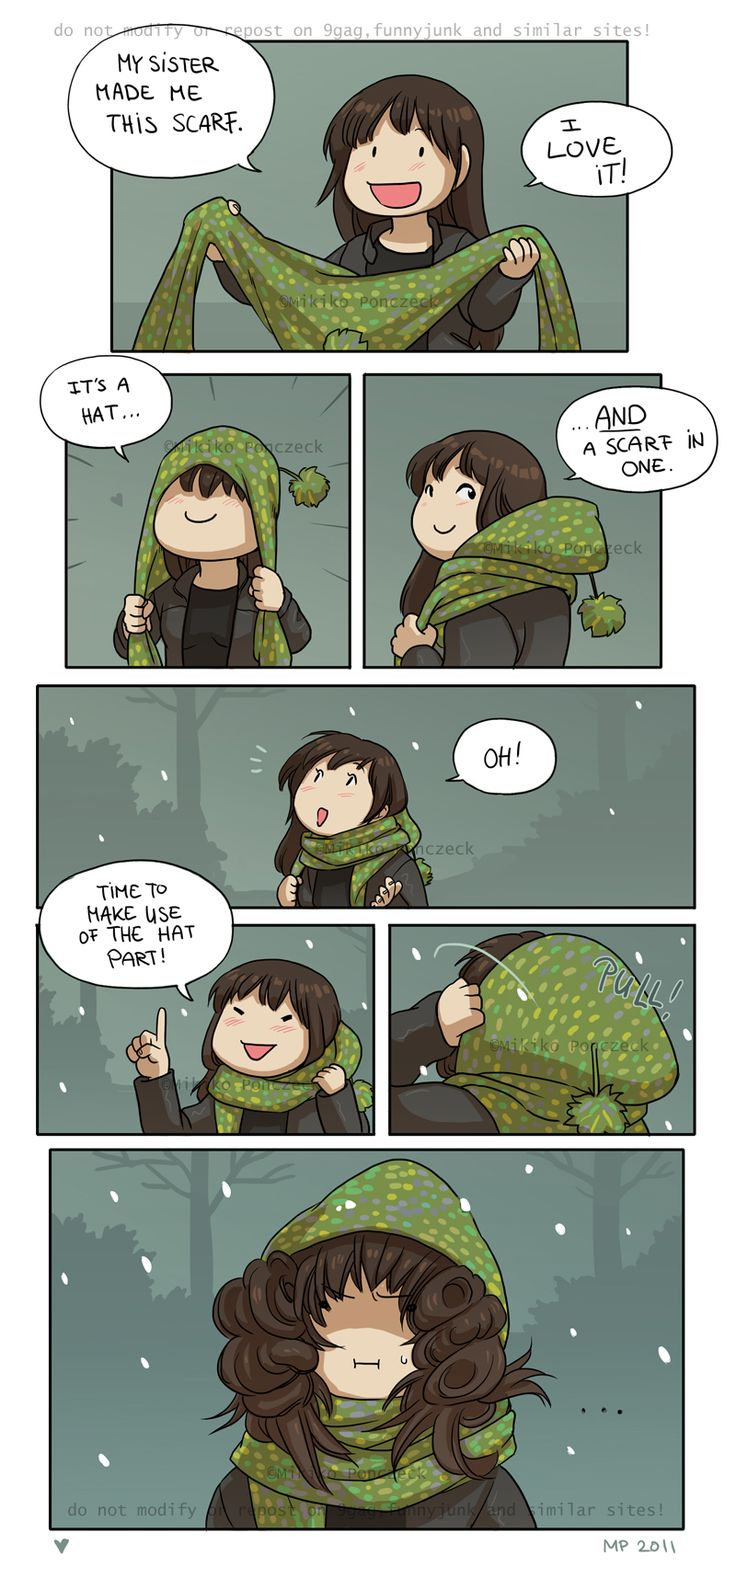 Favourite Scarf by Zombiesmile on DeviantArt